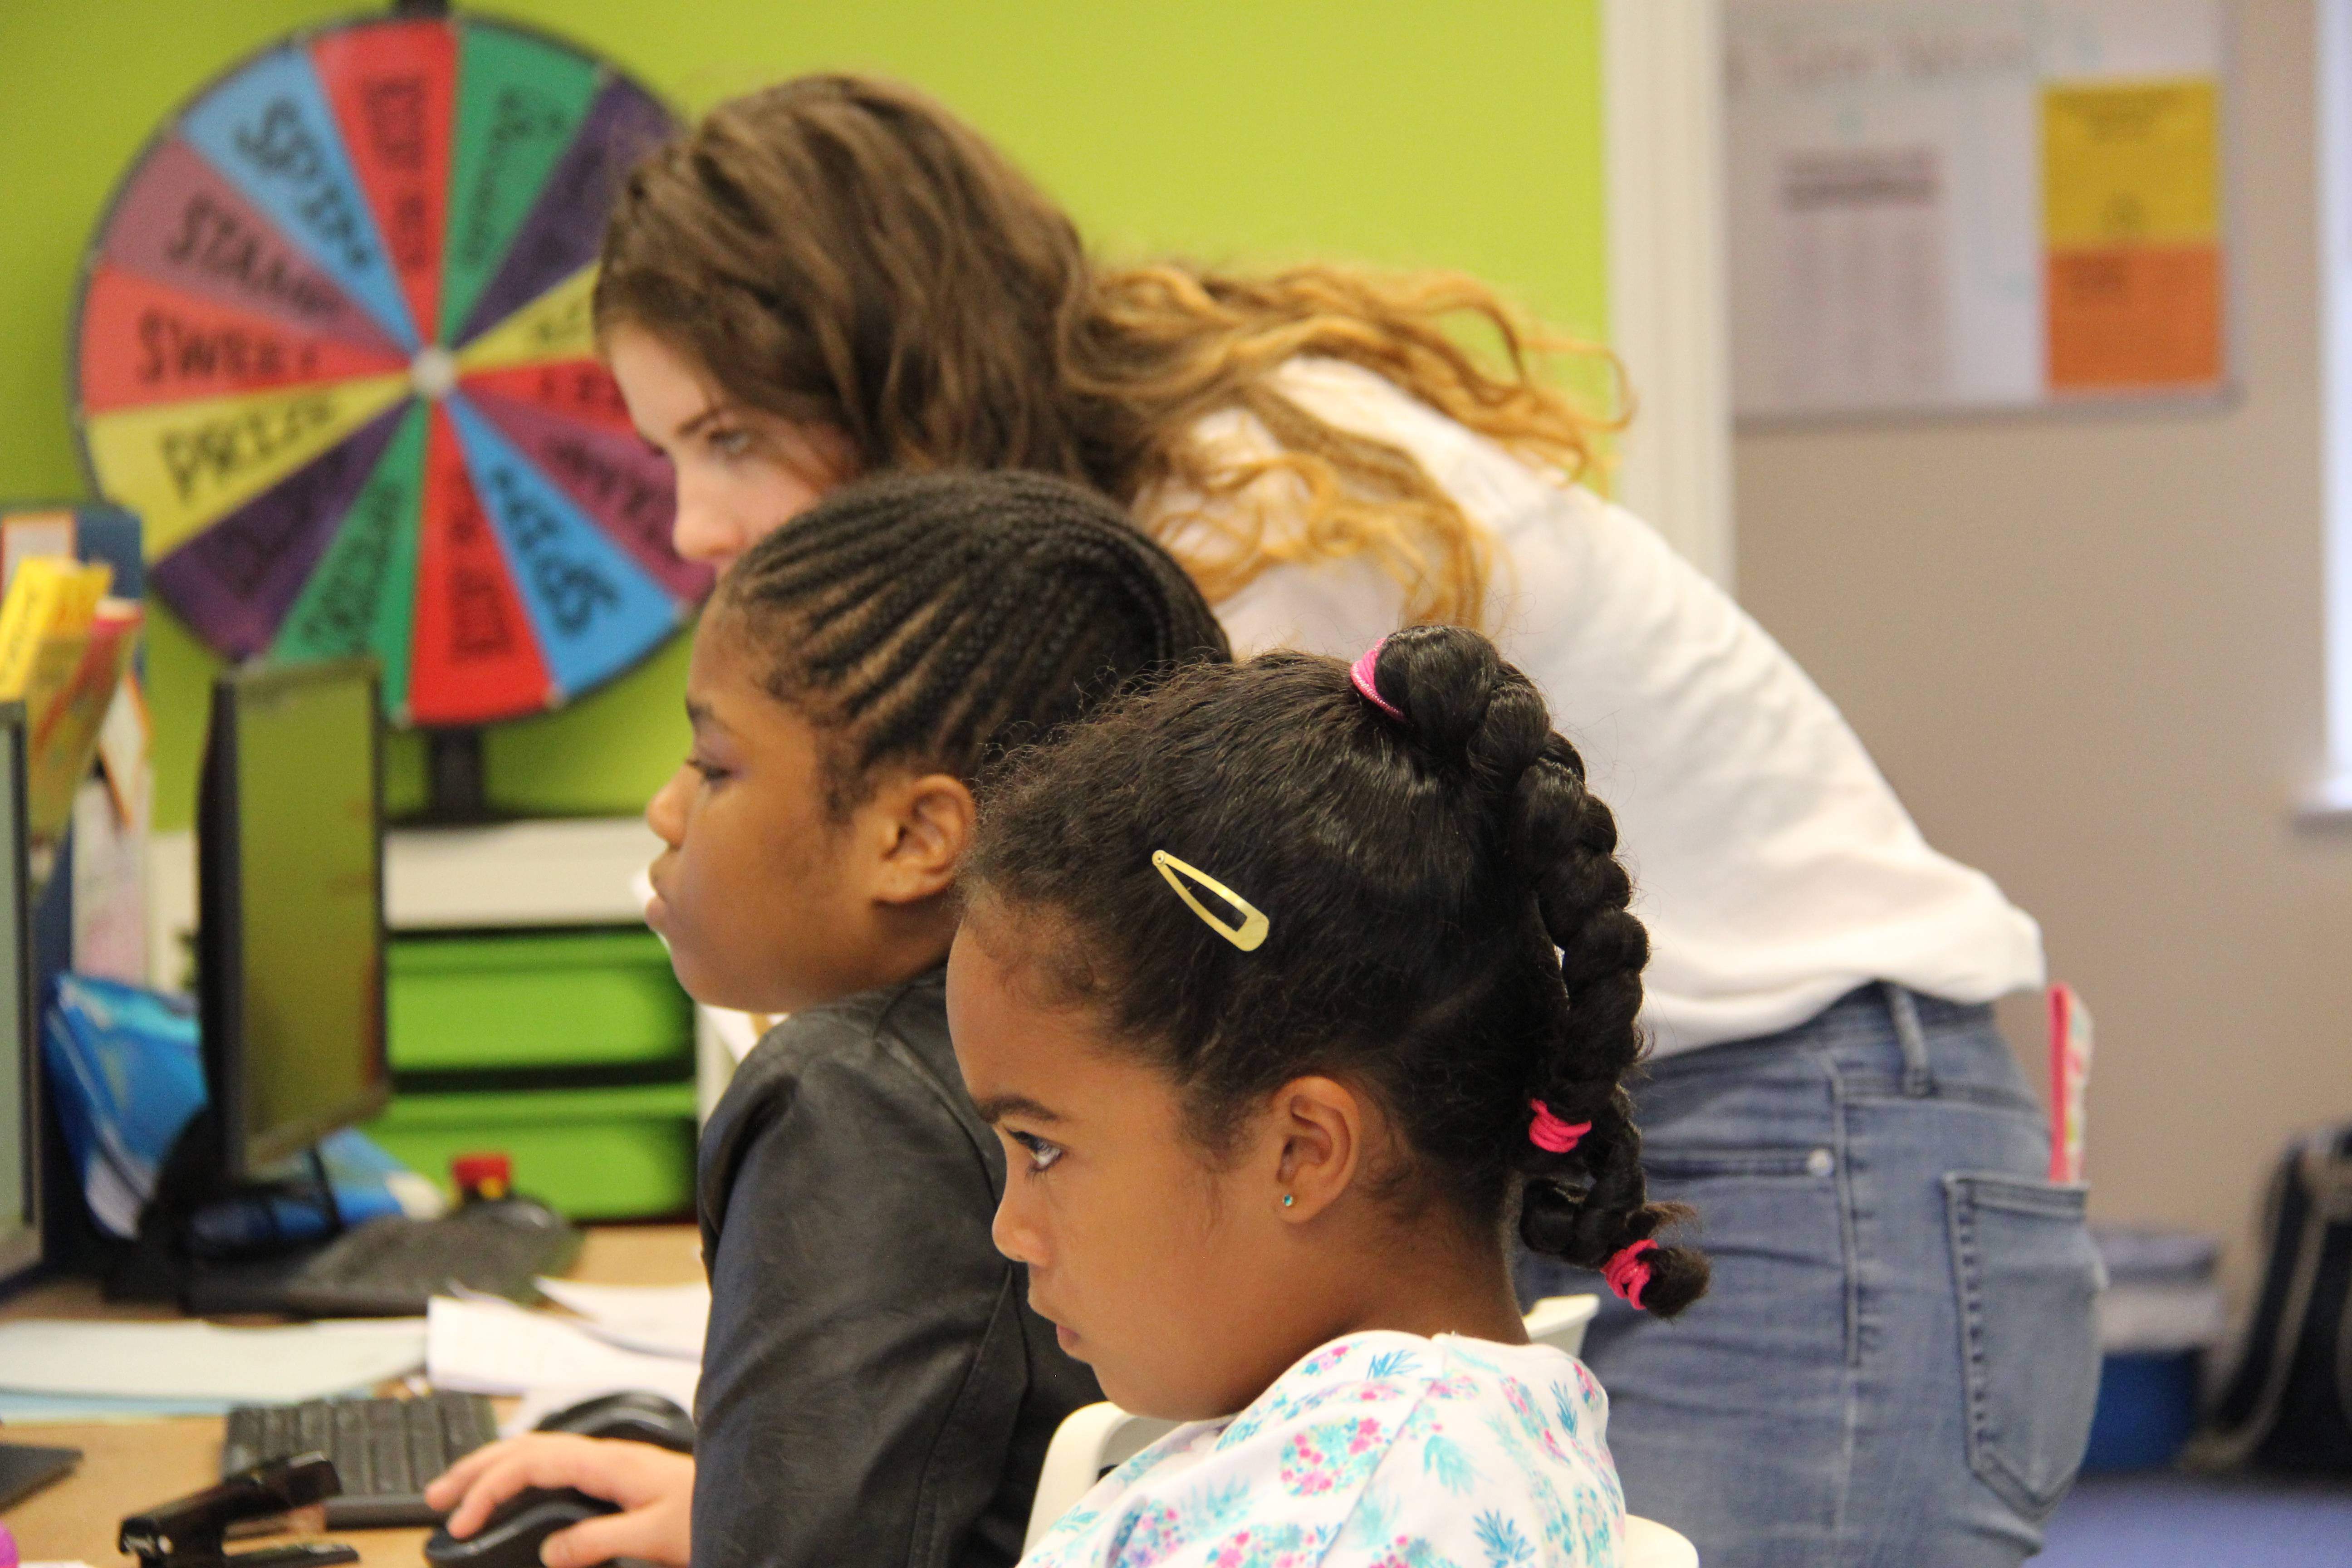 Image of kids in classroom with tutor